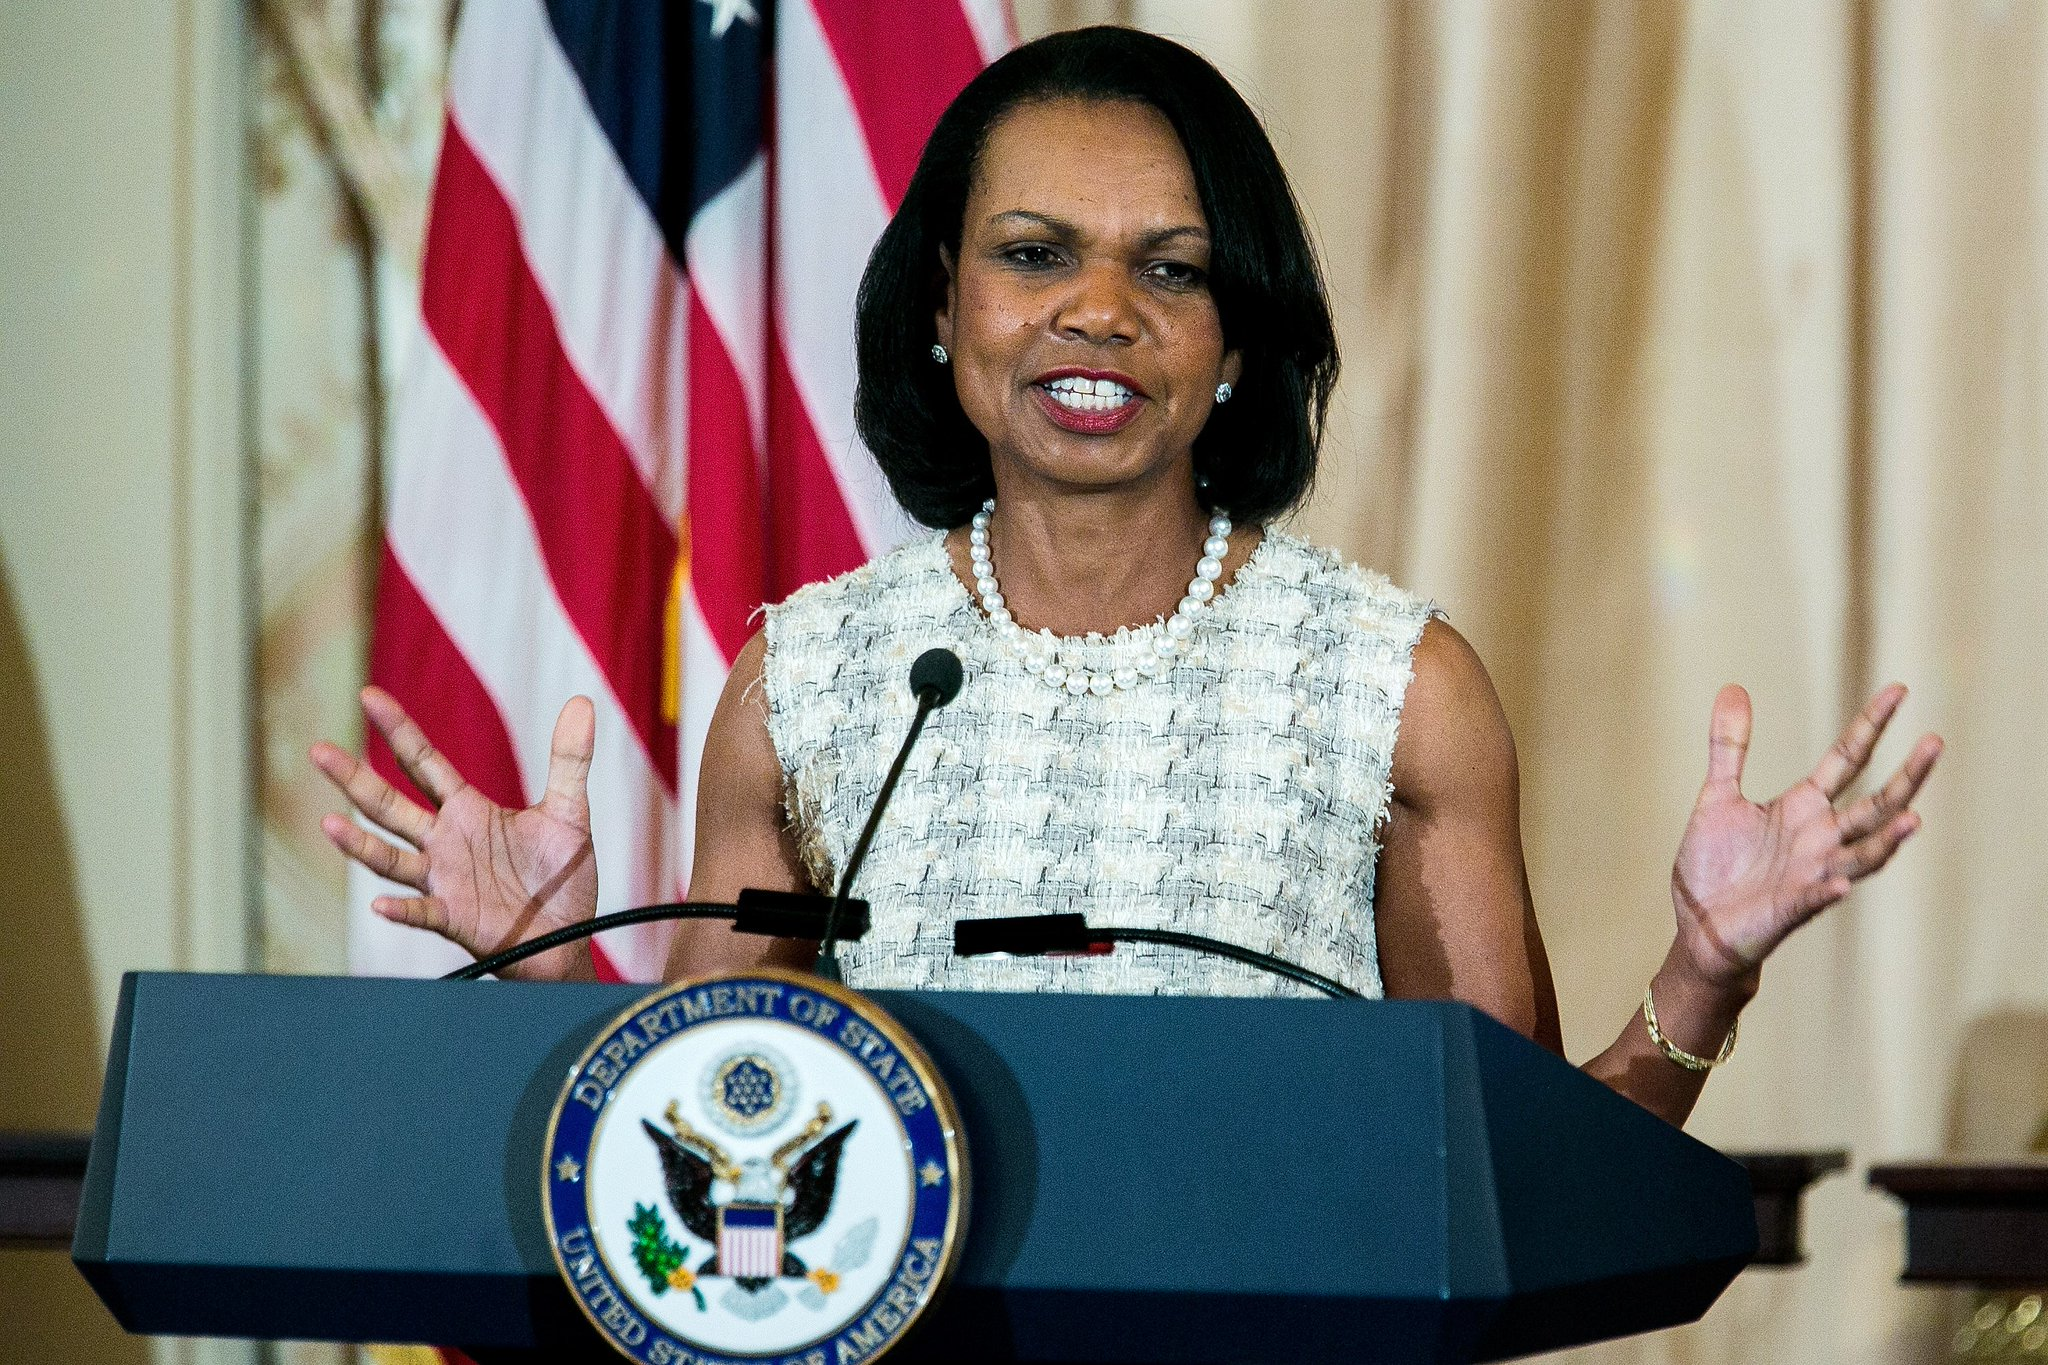 Happy Birthday to Condoleezza Rice who turns 63 today!